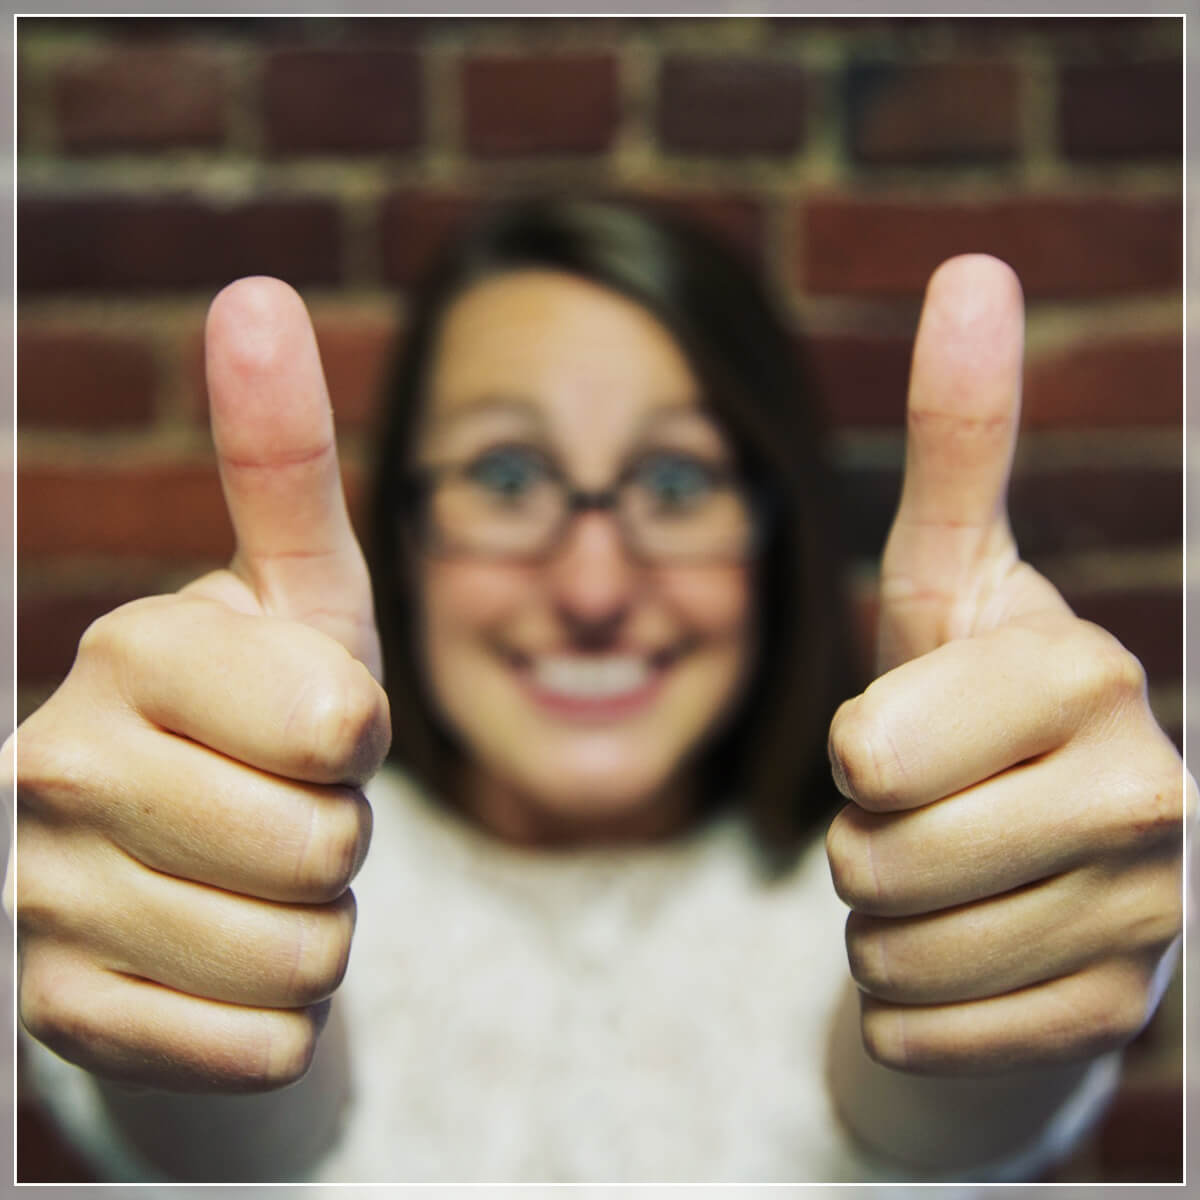 Woman giving two thumbs up to the camera